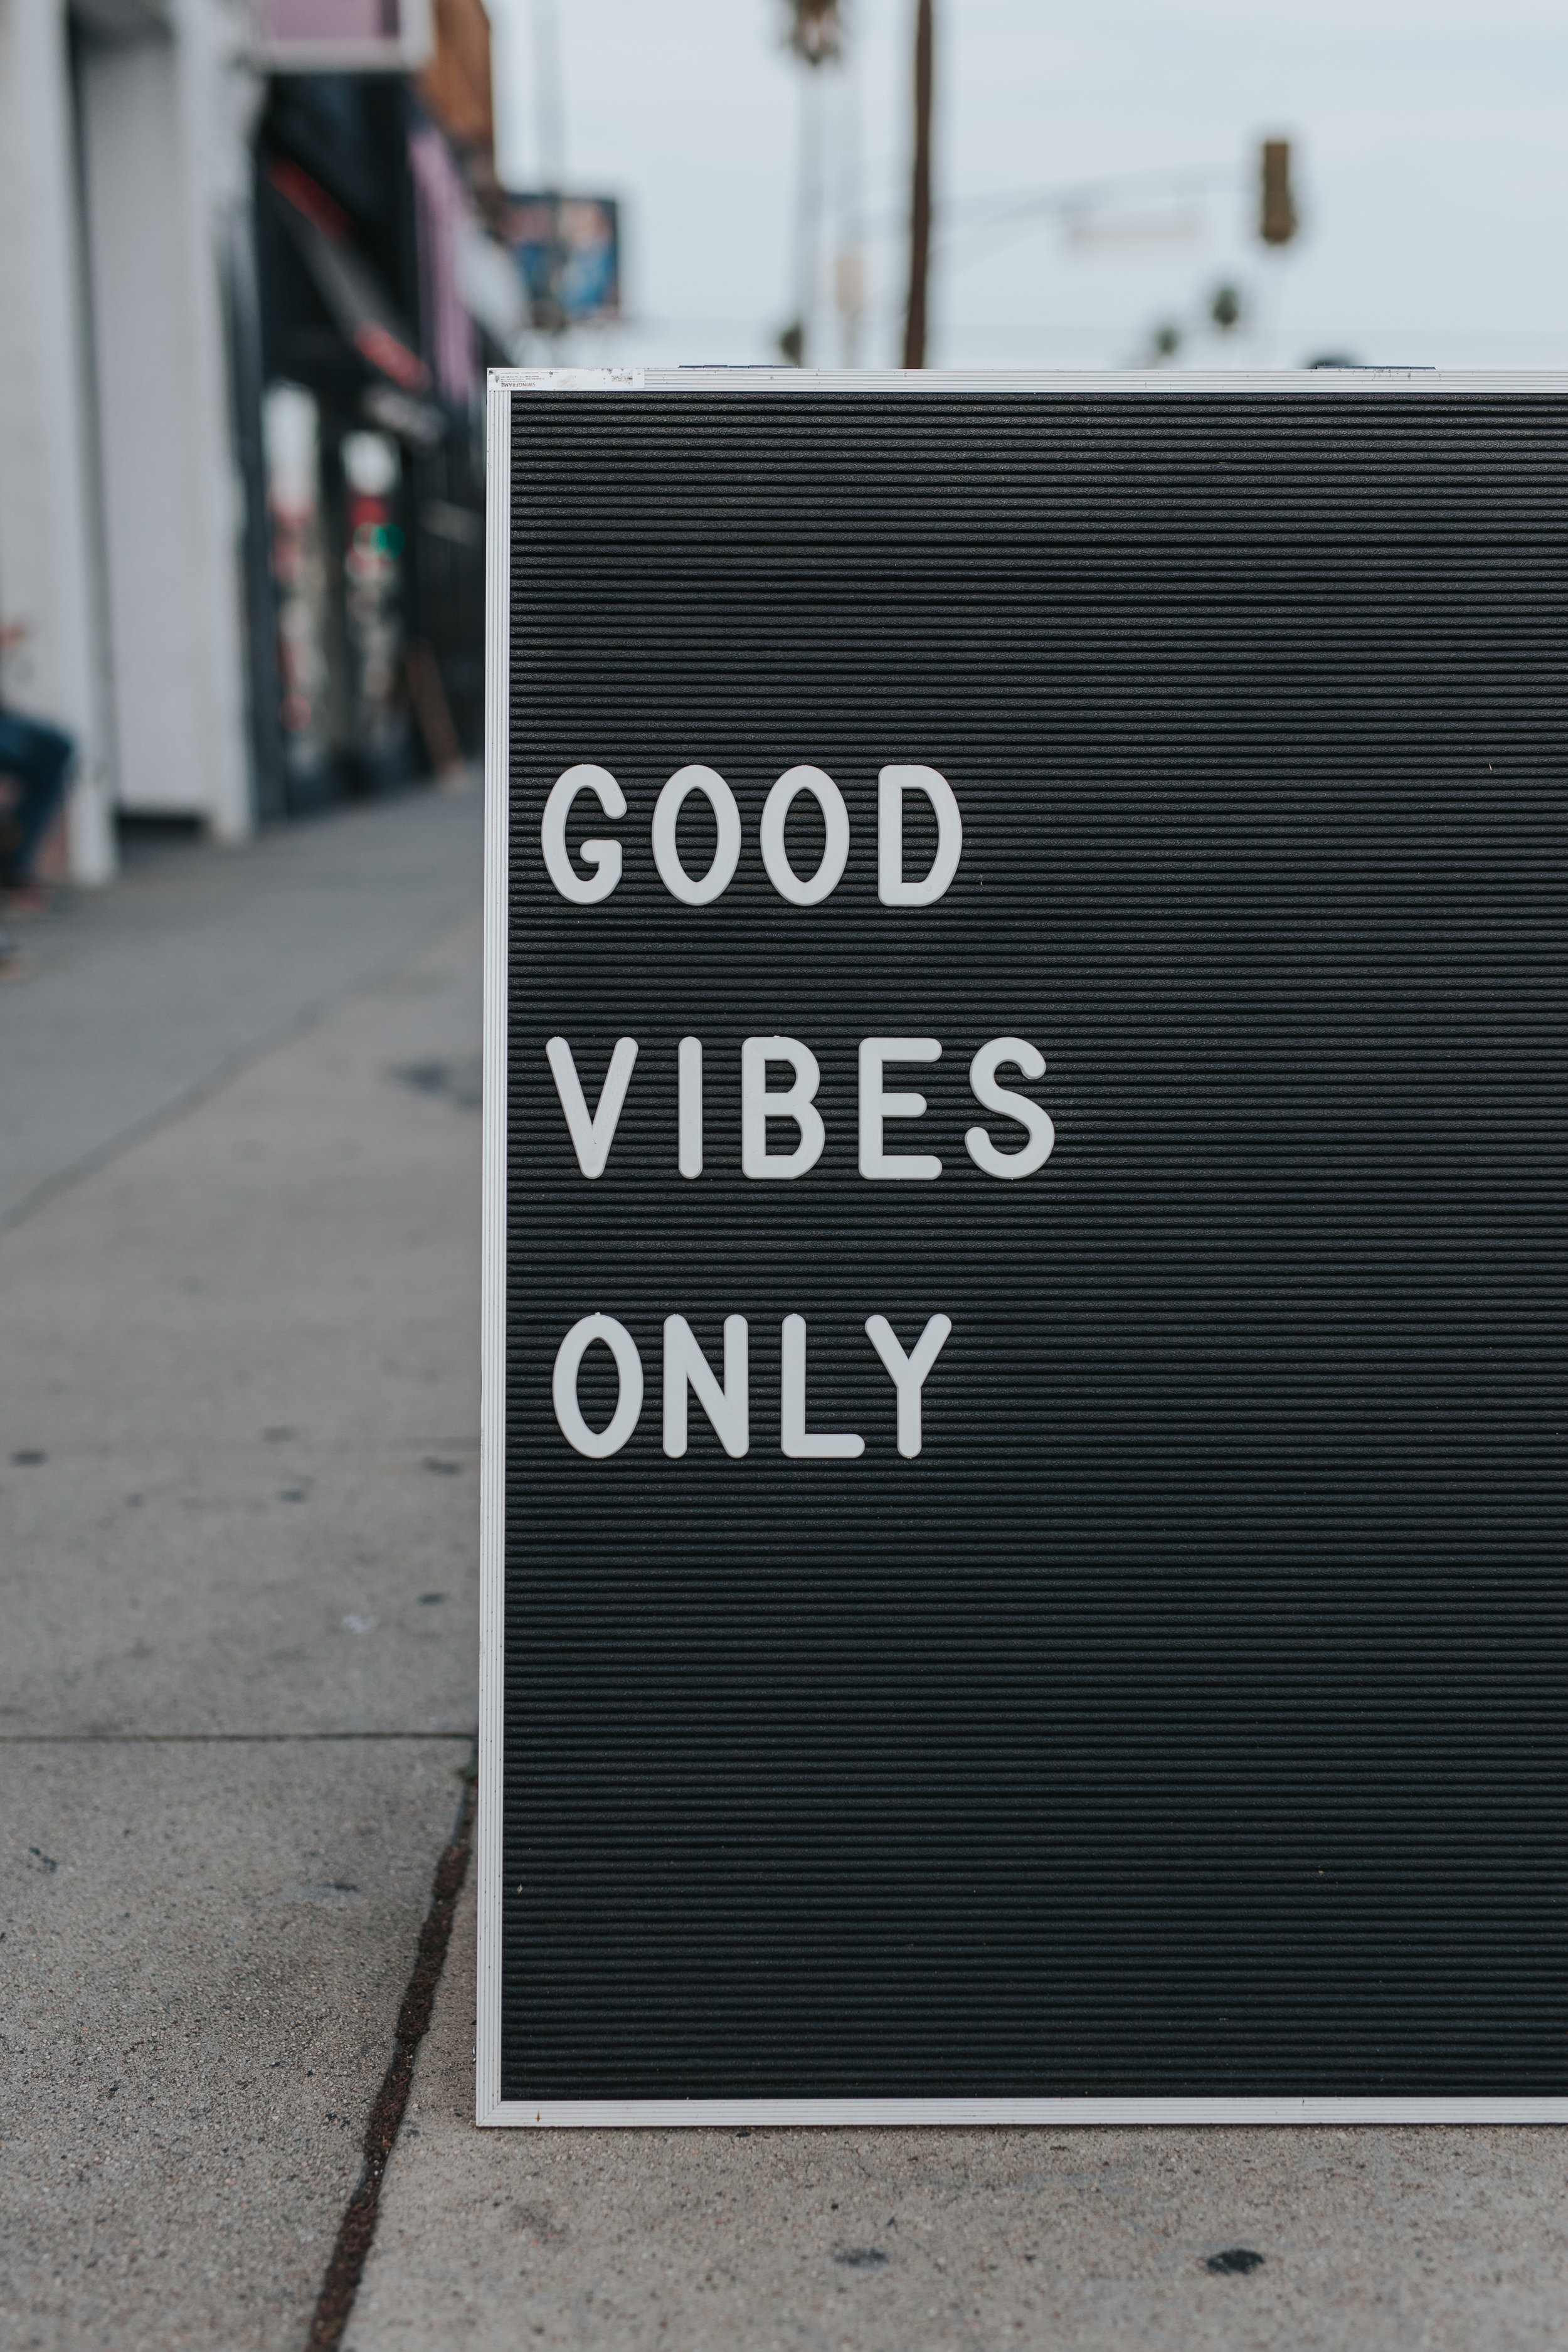 drop the good vibes only mentality